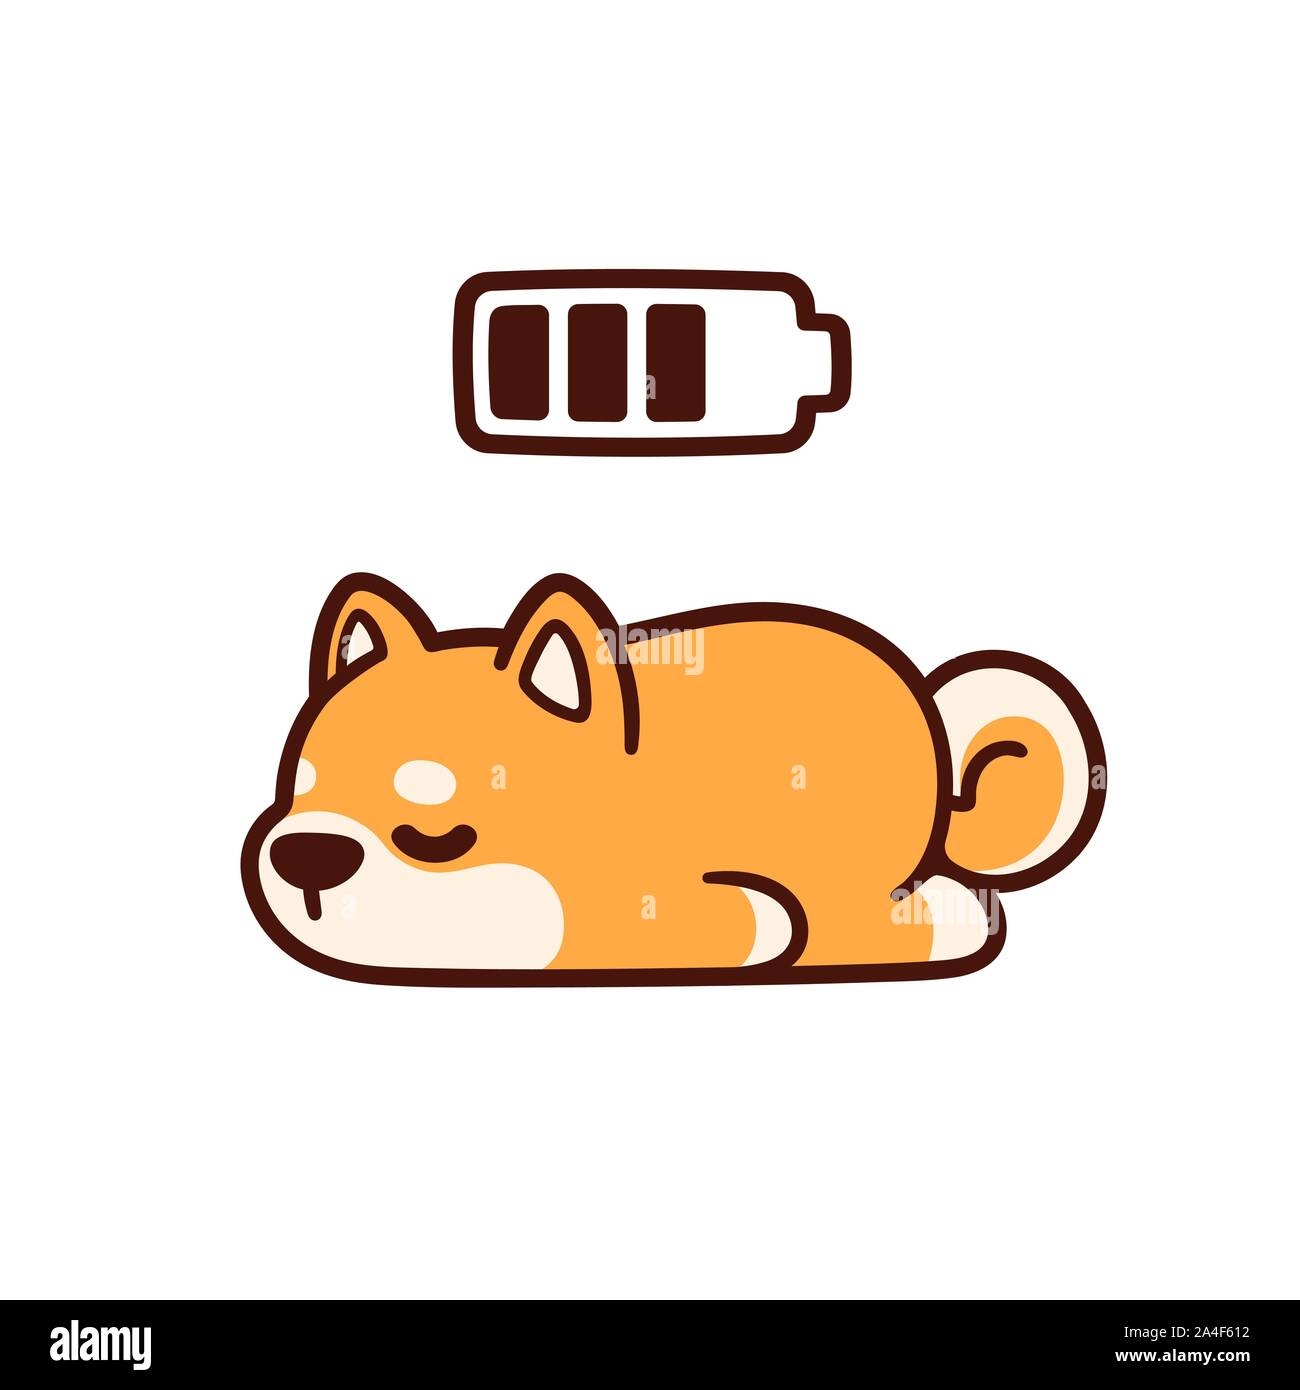 Cute Cartoon Shiba Inu Puppy Taking Power Nap With Charging Battery Adorable Sleeping Dog Drawing Vector Illustration Stock Vector Image Art Alamy